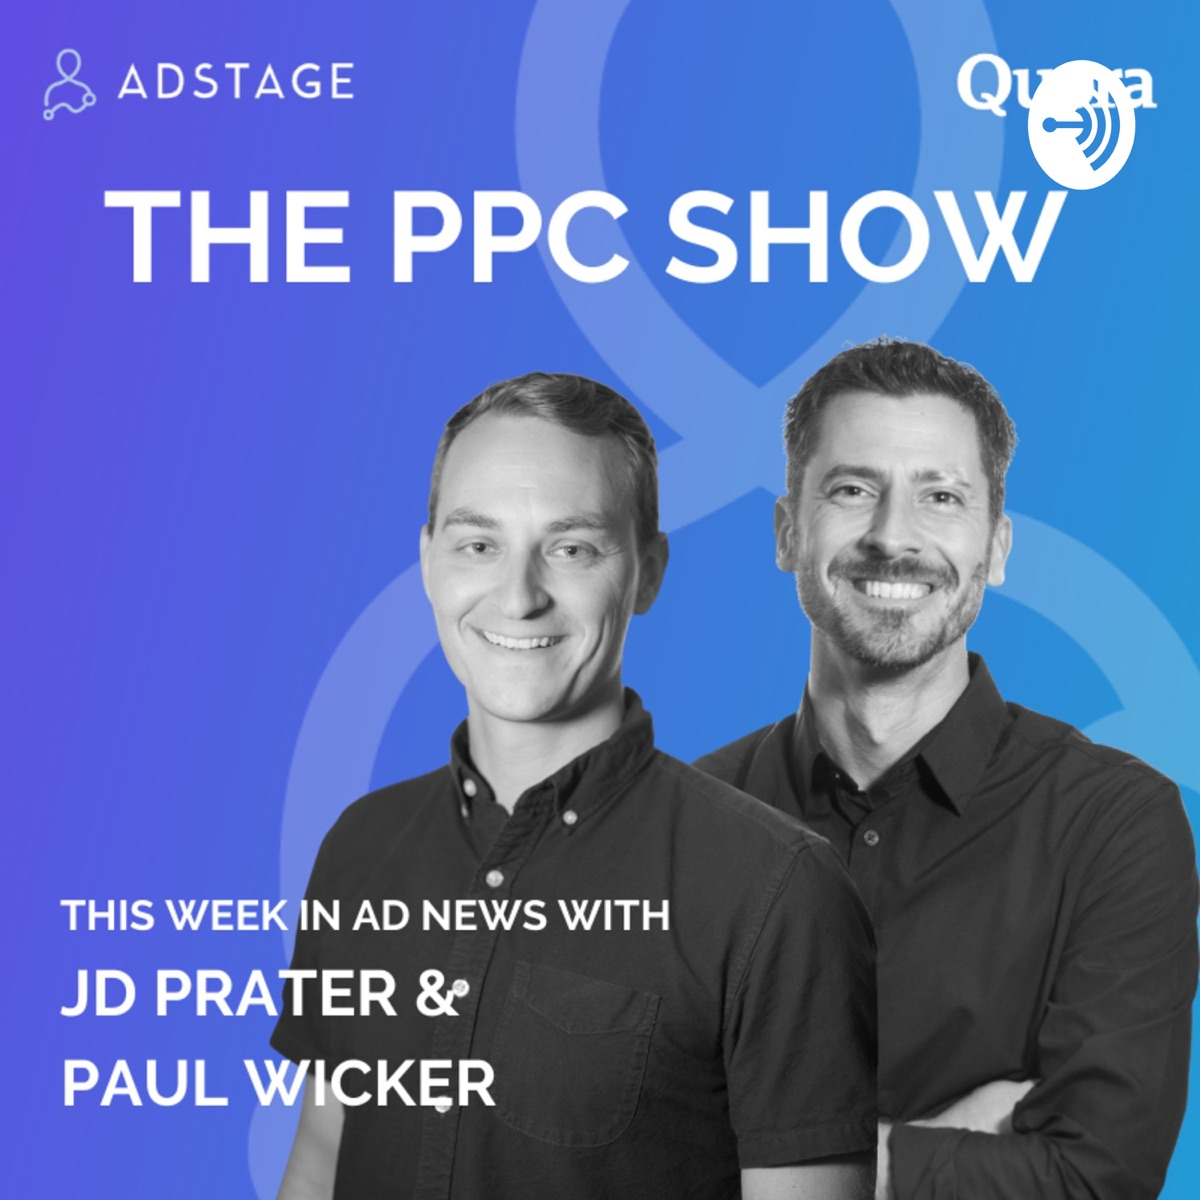 The PPC Show Podcast